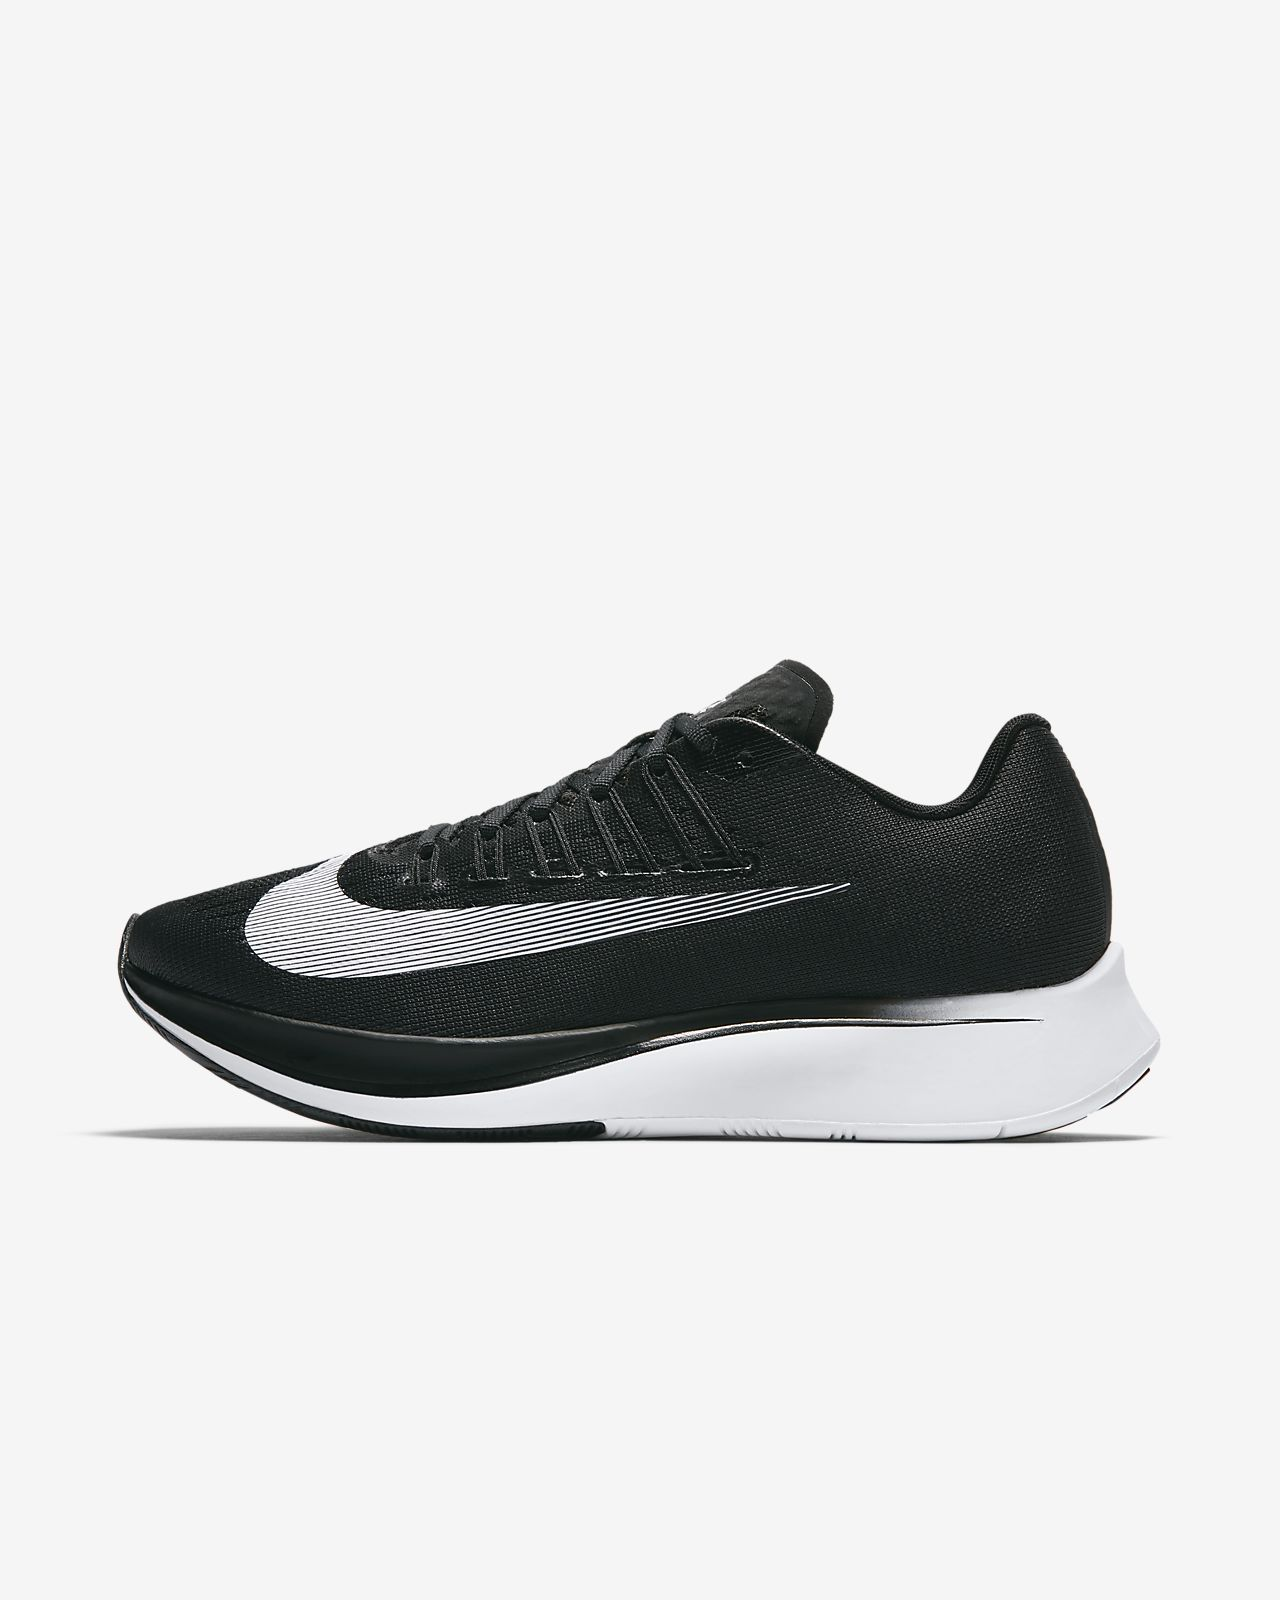 Chaussure de running Nike pour Zoom Fly pour Nike CA 43ef36